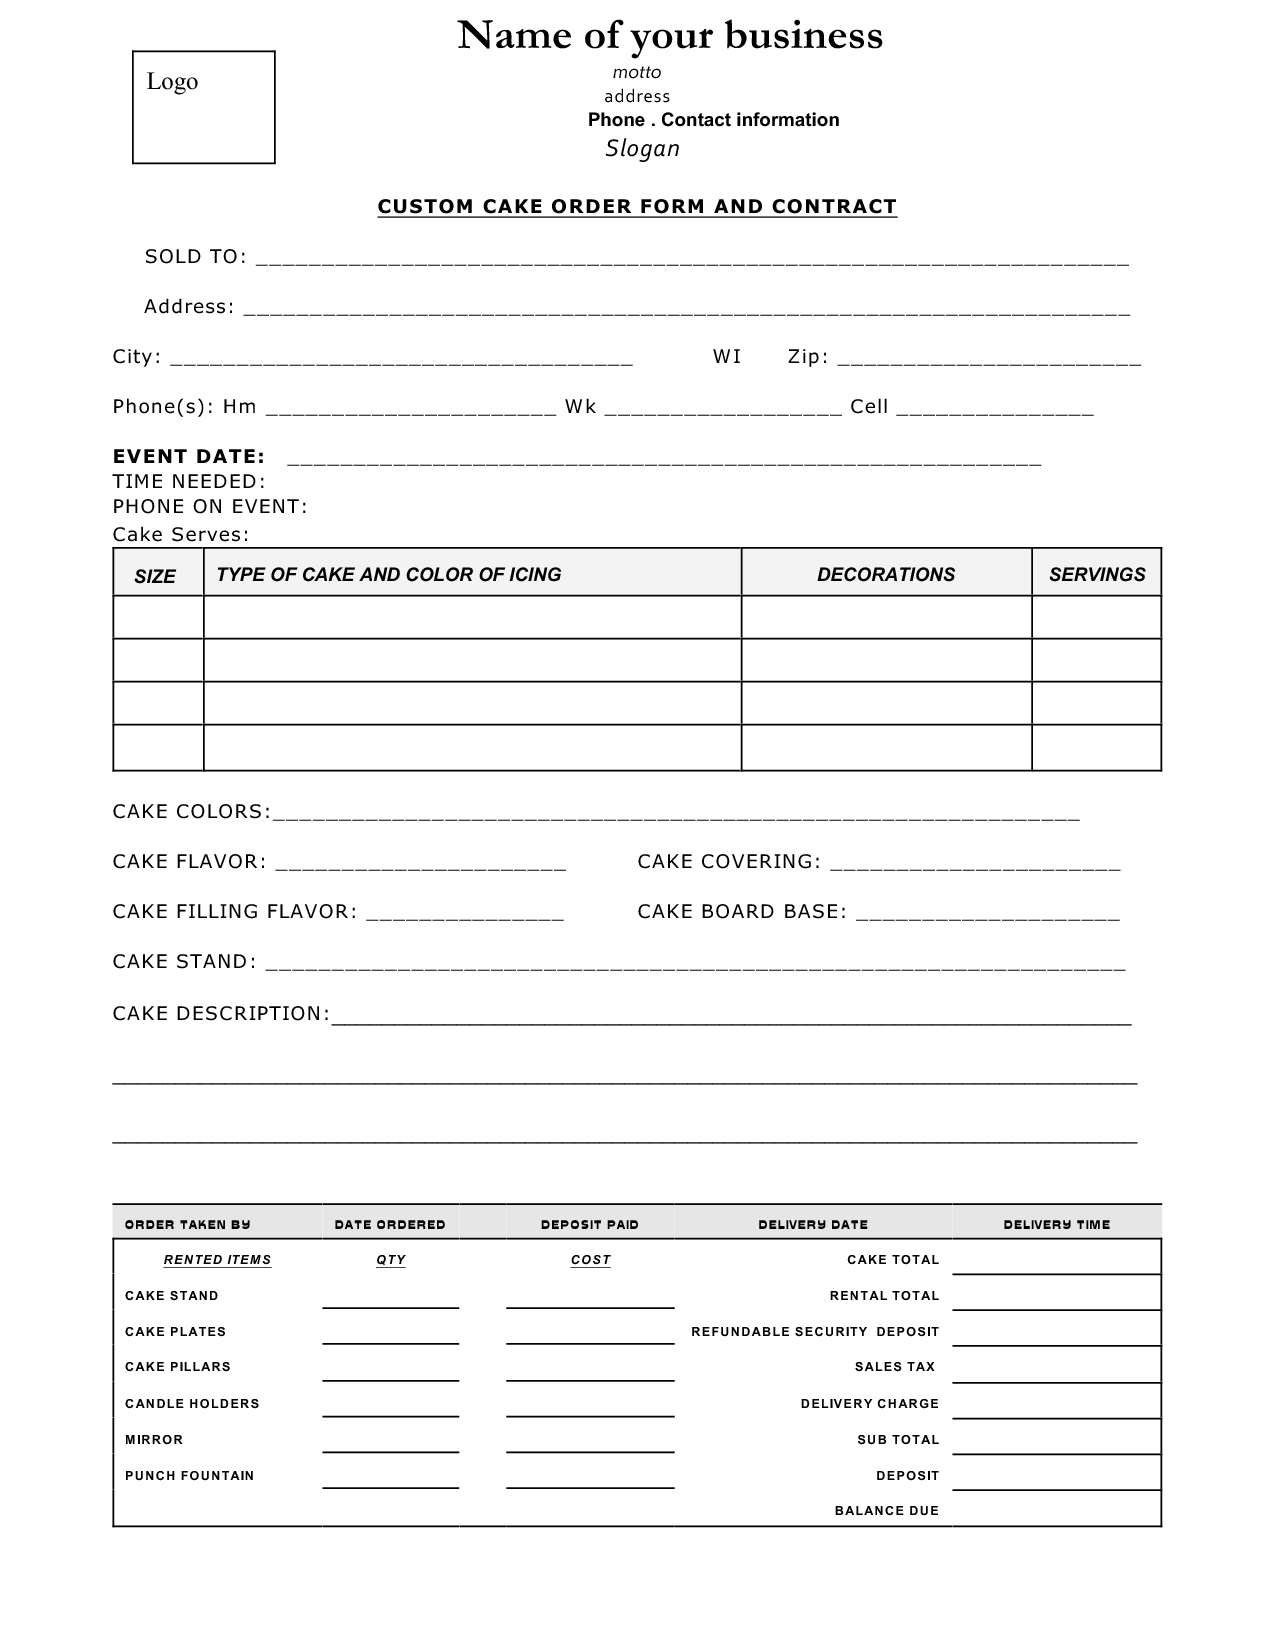 Cake Order Contract  Event Order Form And Contract  Cake Order